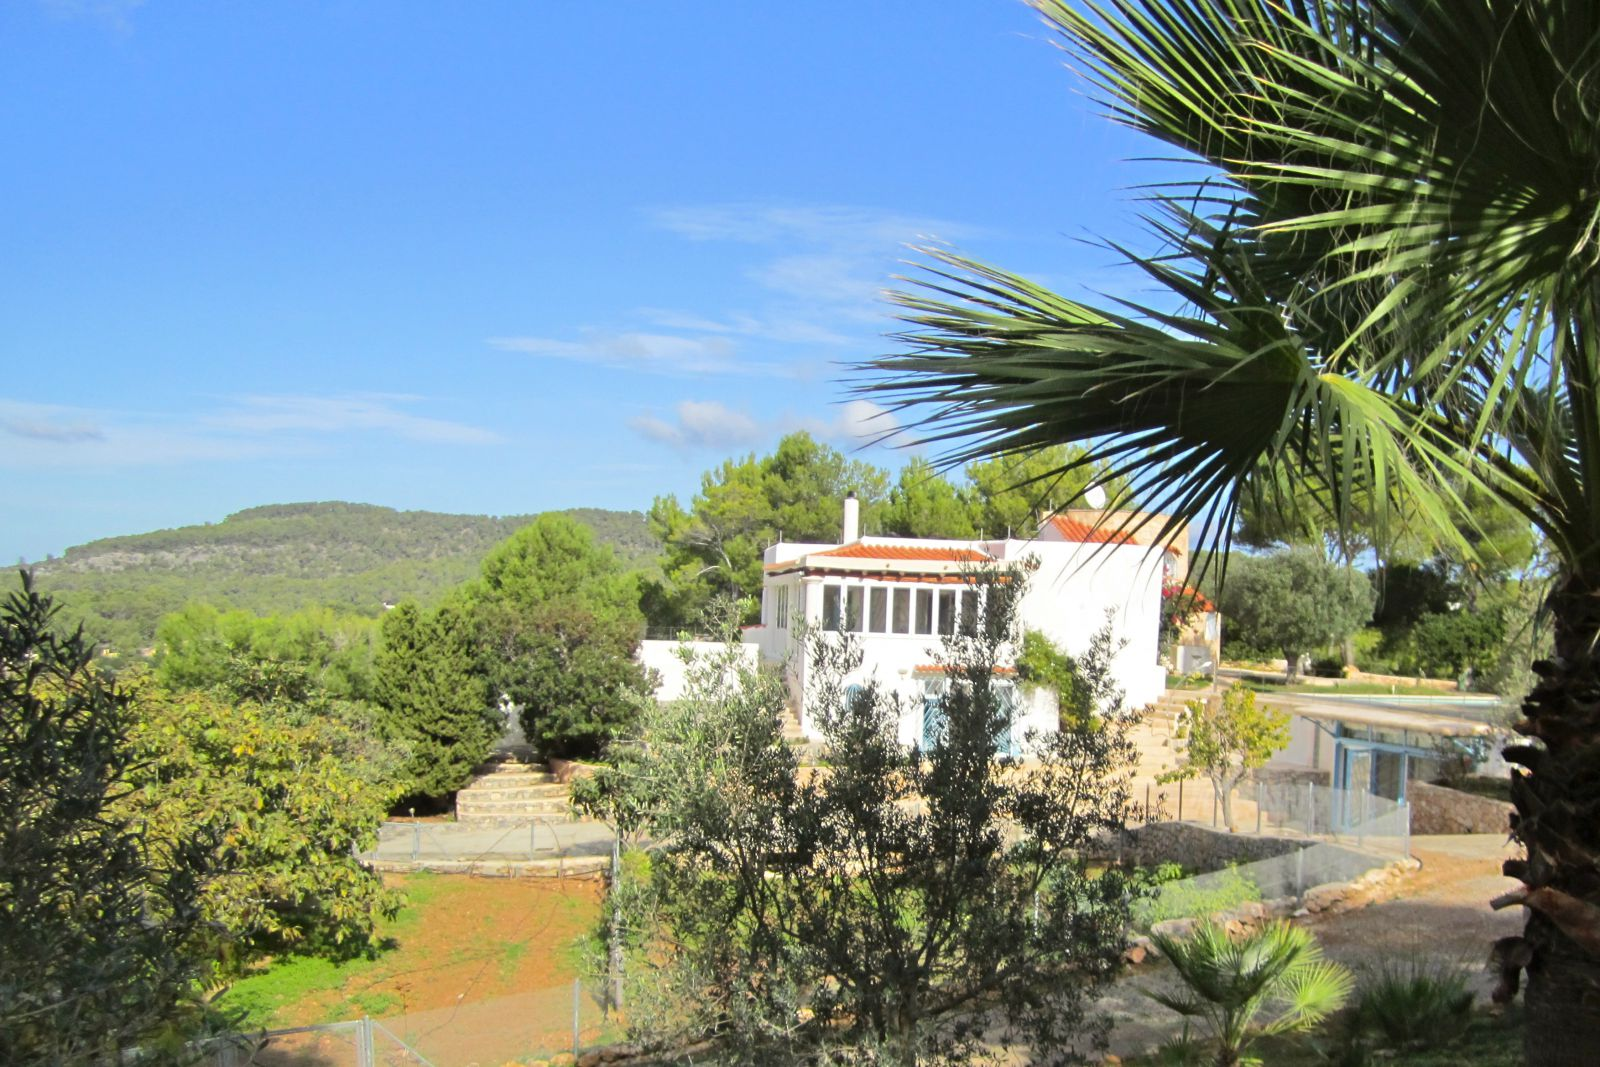 Villa with 3 annexes in loft style with sea view in Cala Vadella